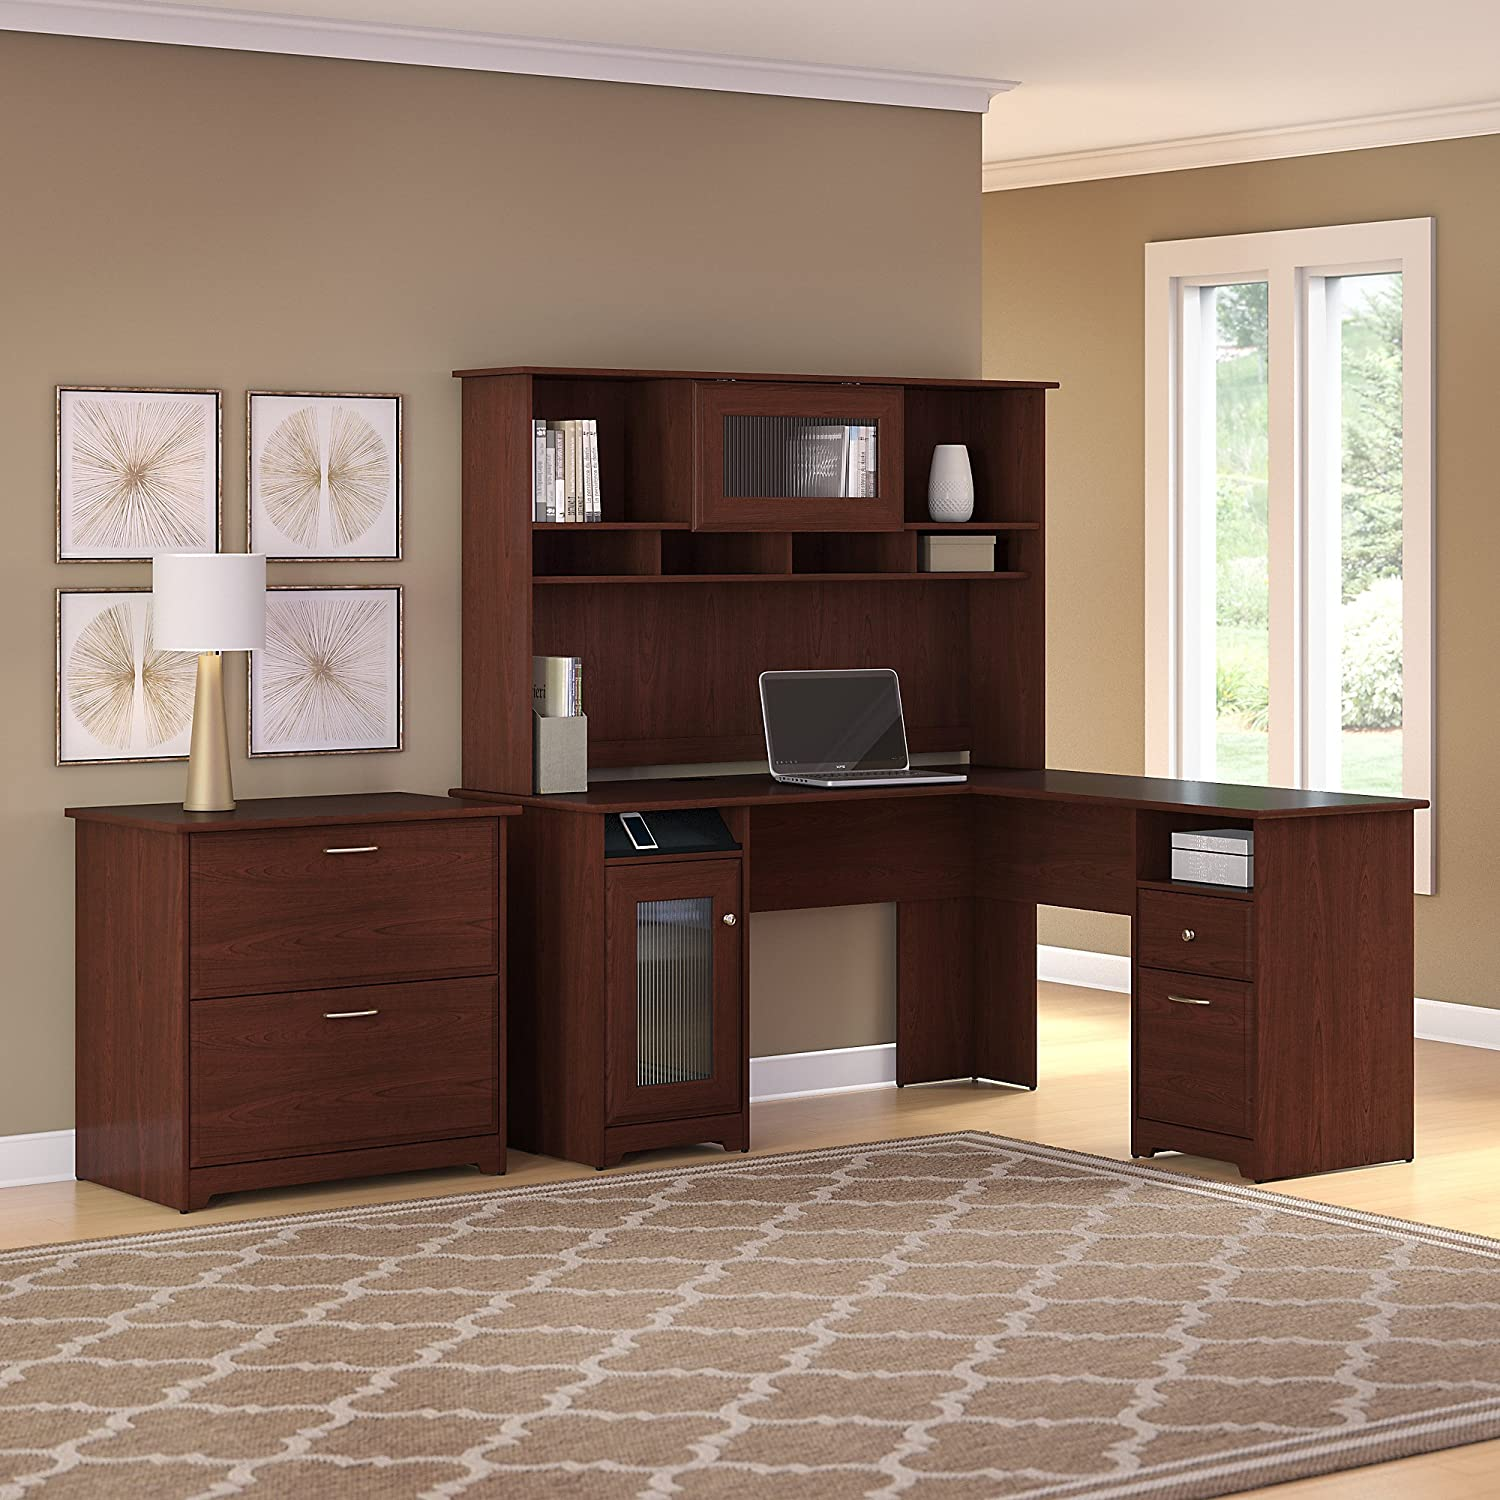 Amazoncom Bush Furniture Cabot L Shaped Desk With Hutch And